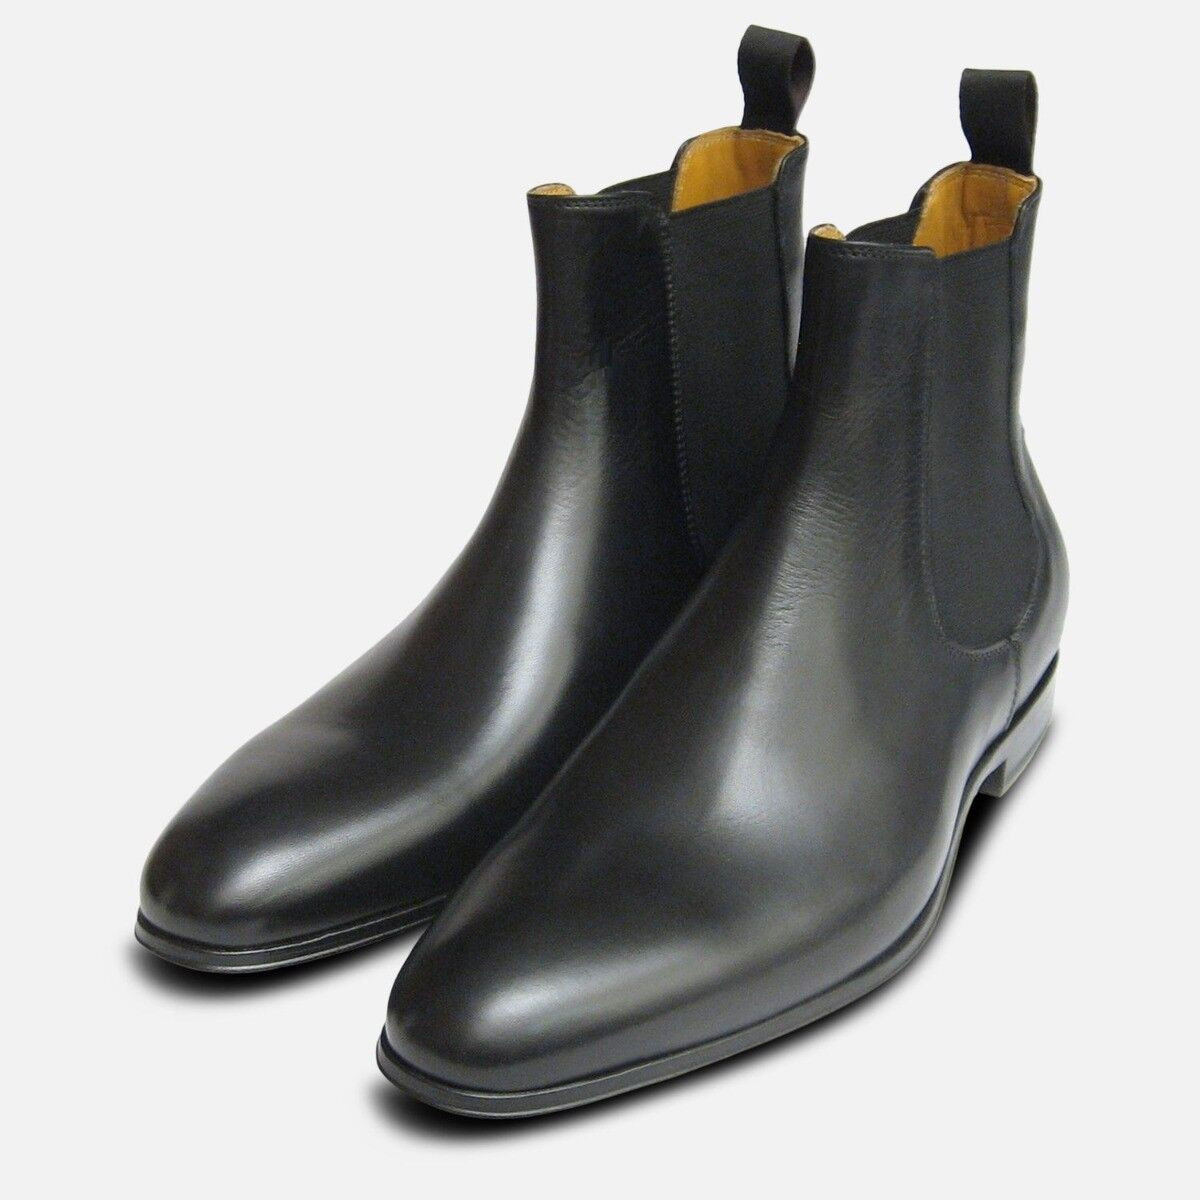 Black Leather Chelsea Boots for Men